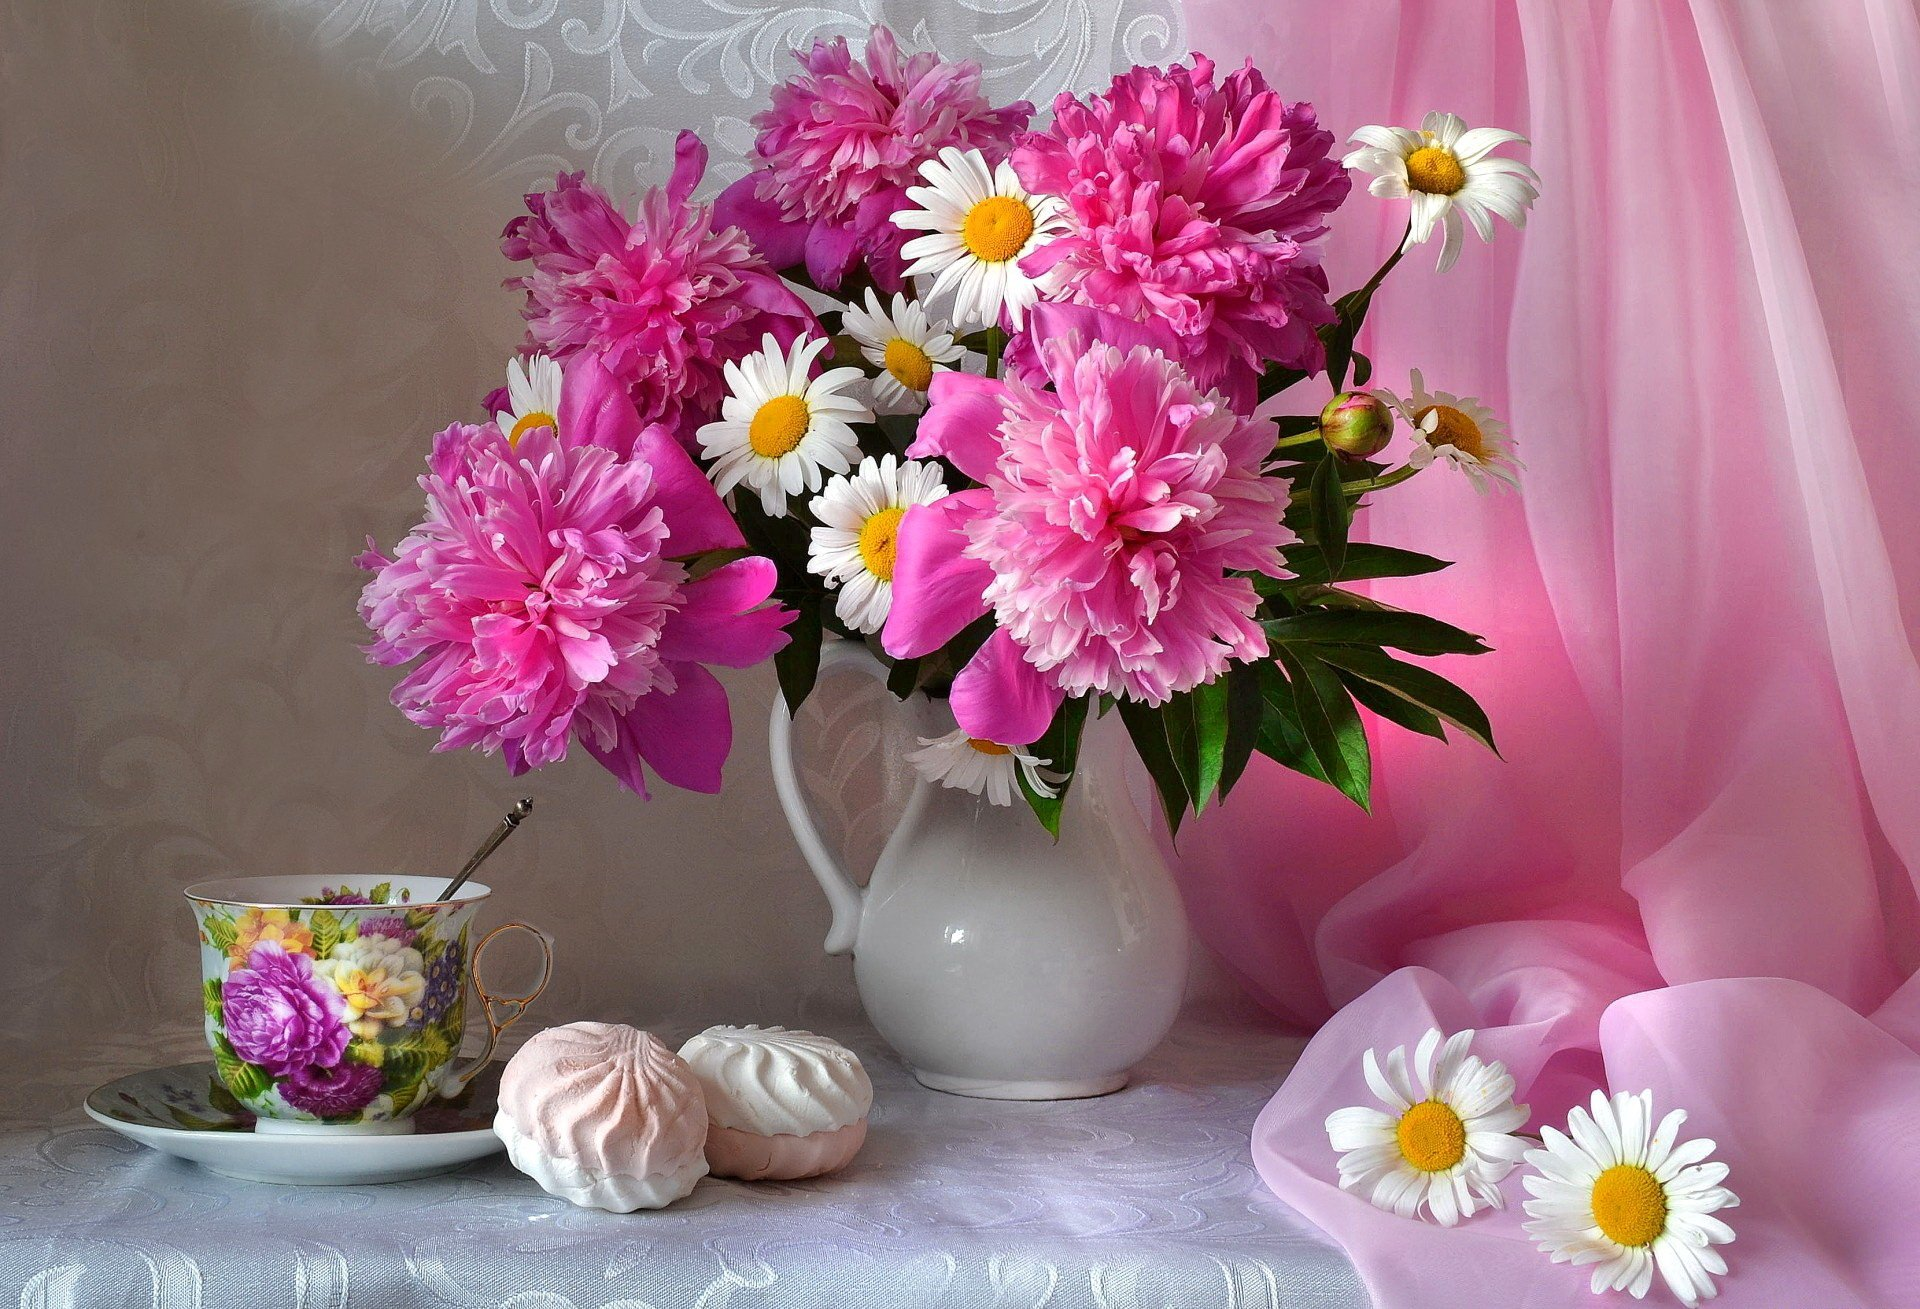 Photography - Still Life  White Flower Peony Daisy Cookie Cup Pink Flower Flower Scarf Wallpaper